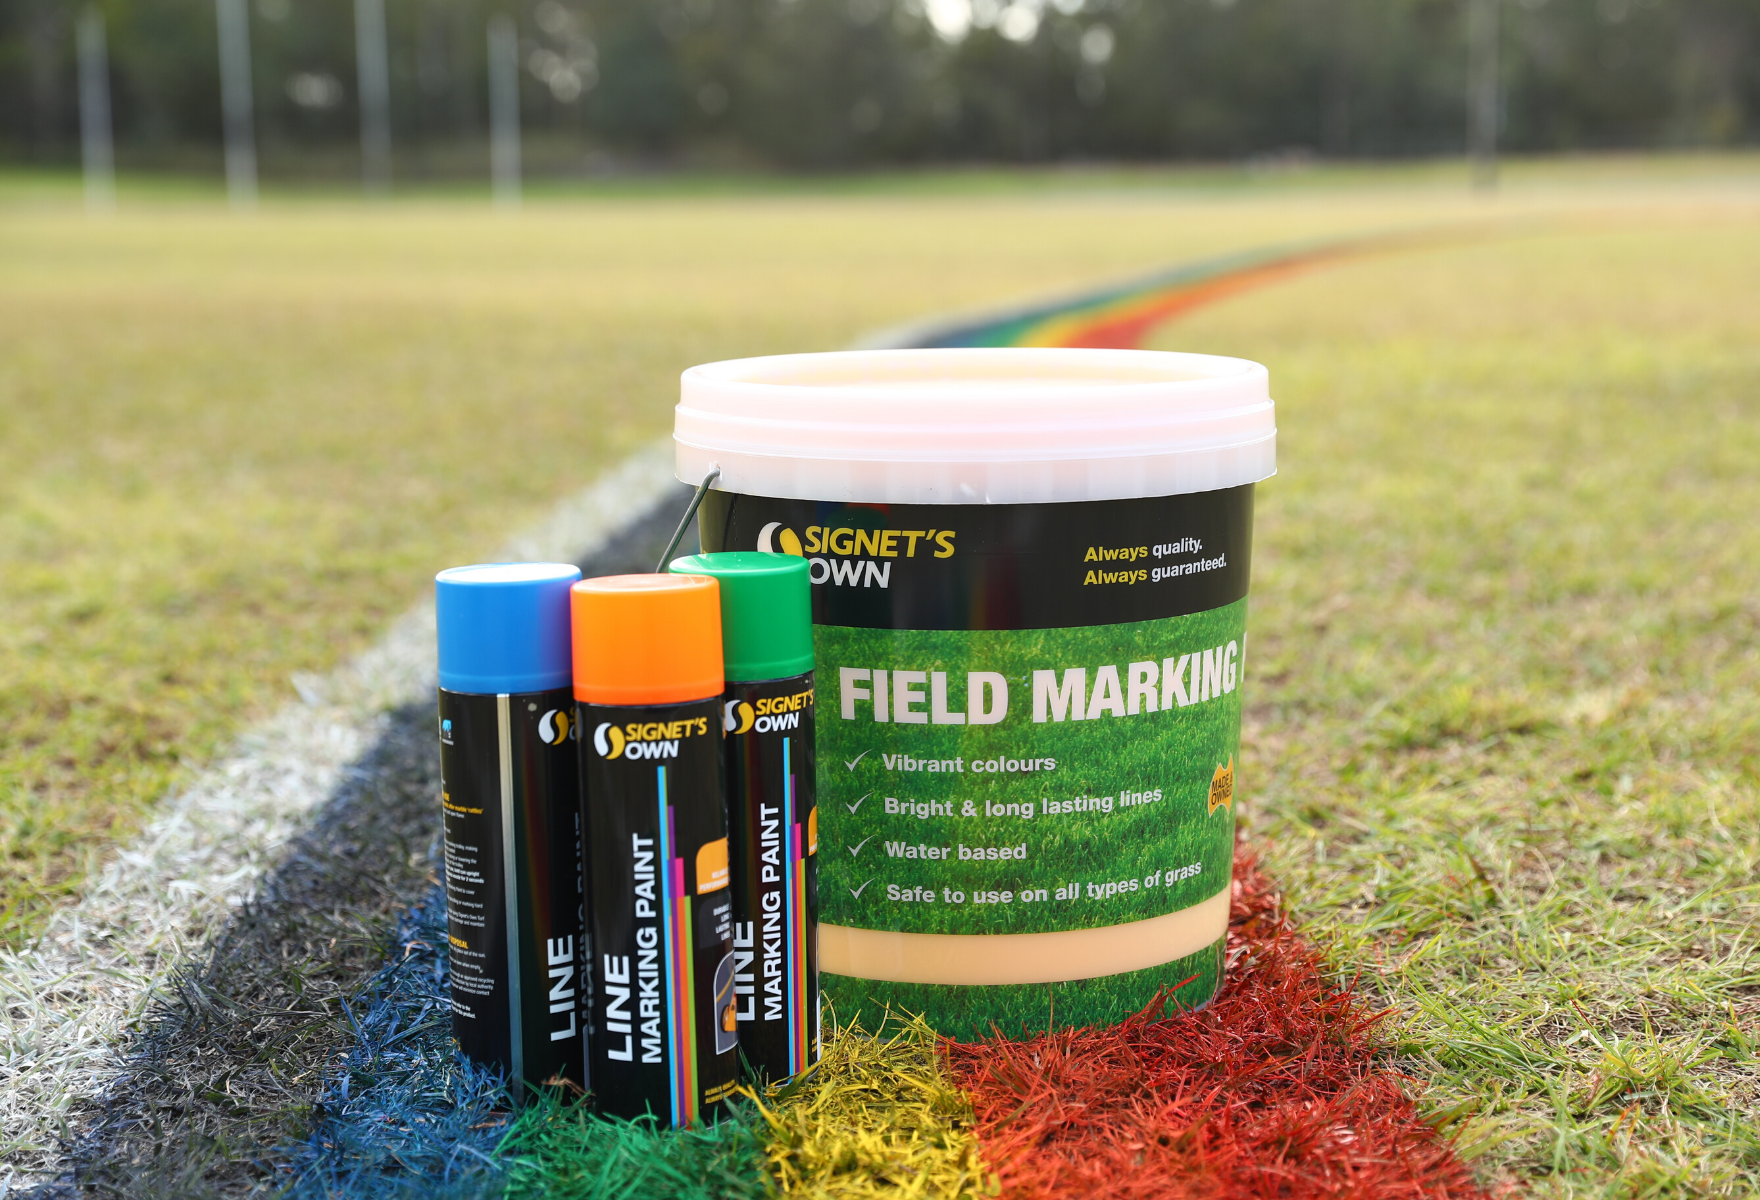 Signet's Own Line and Field Marking Paint